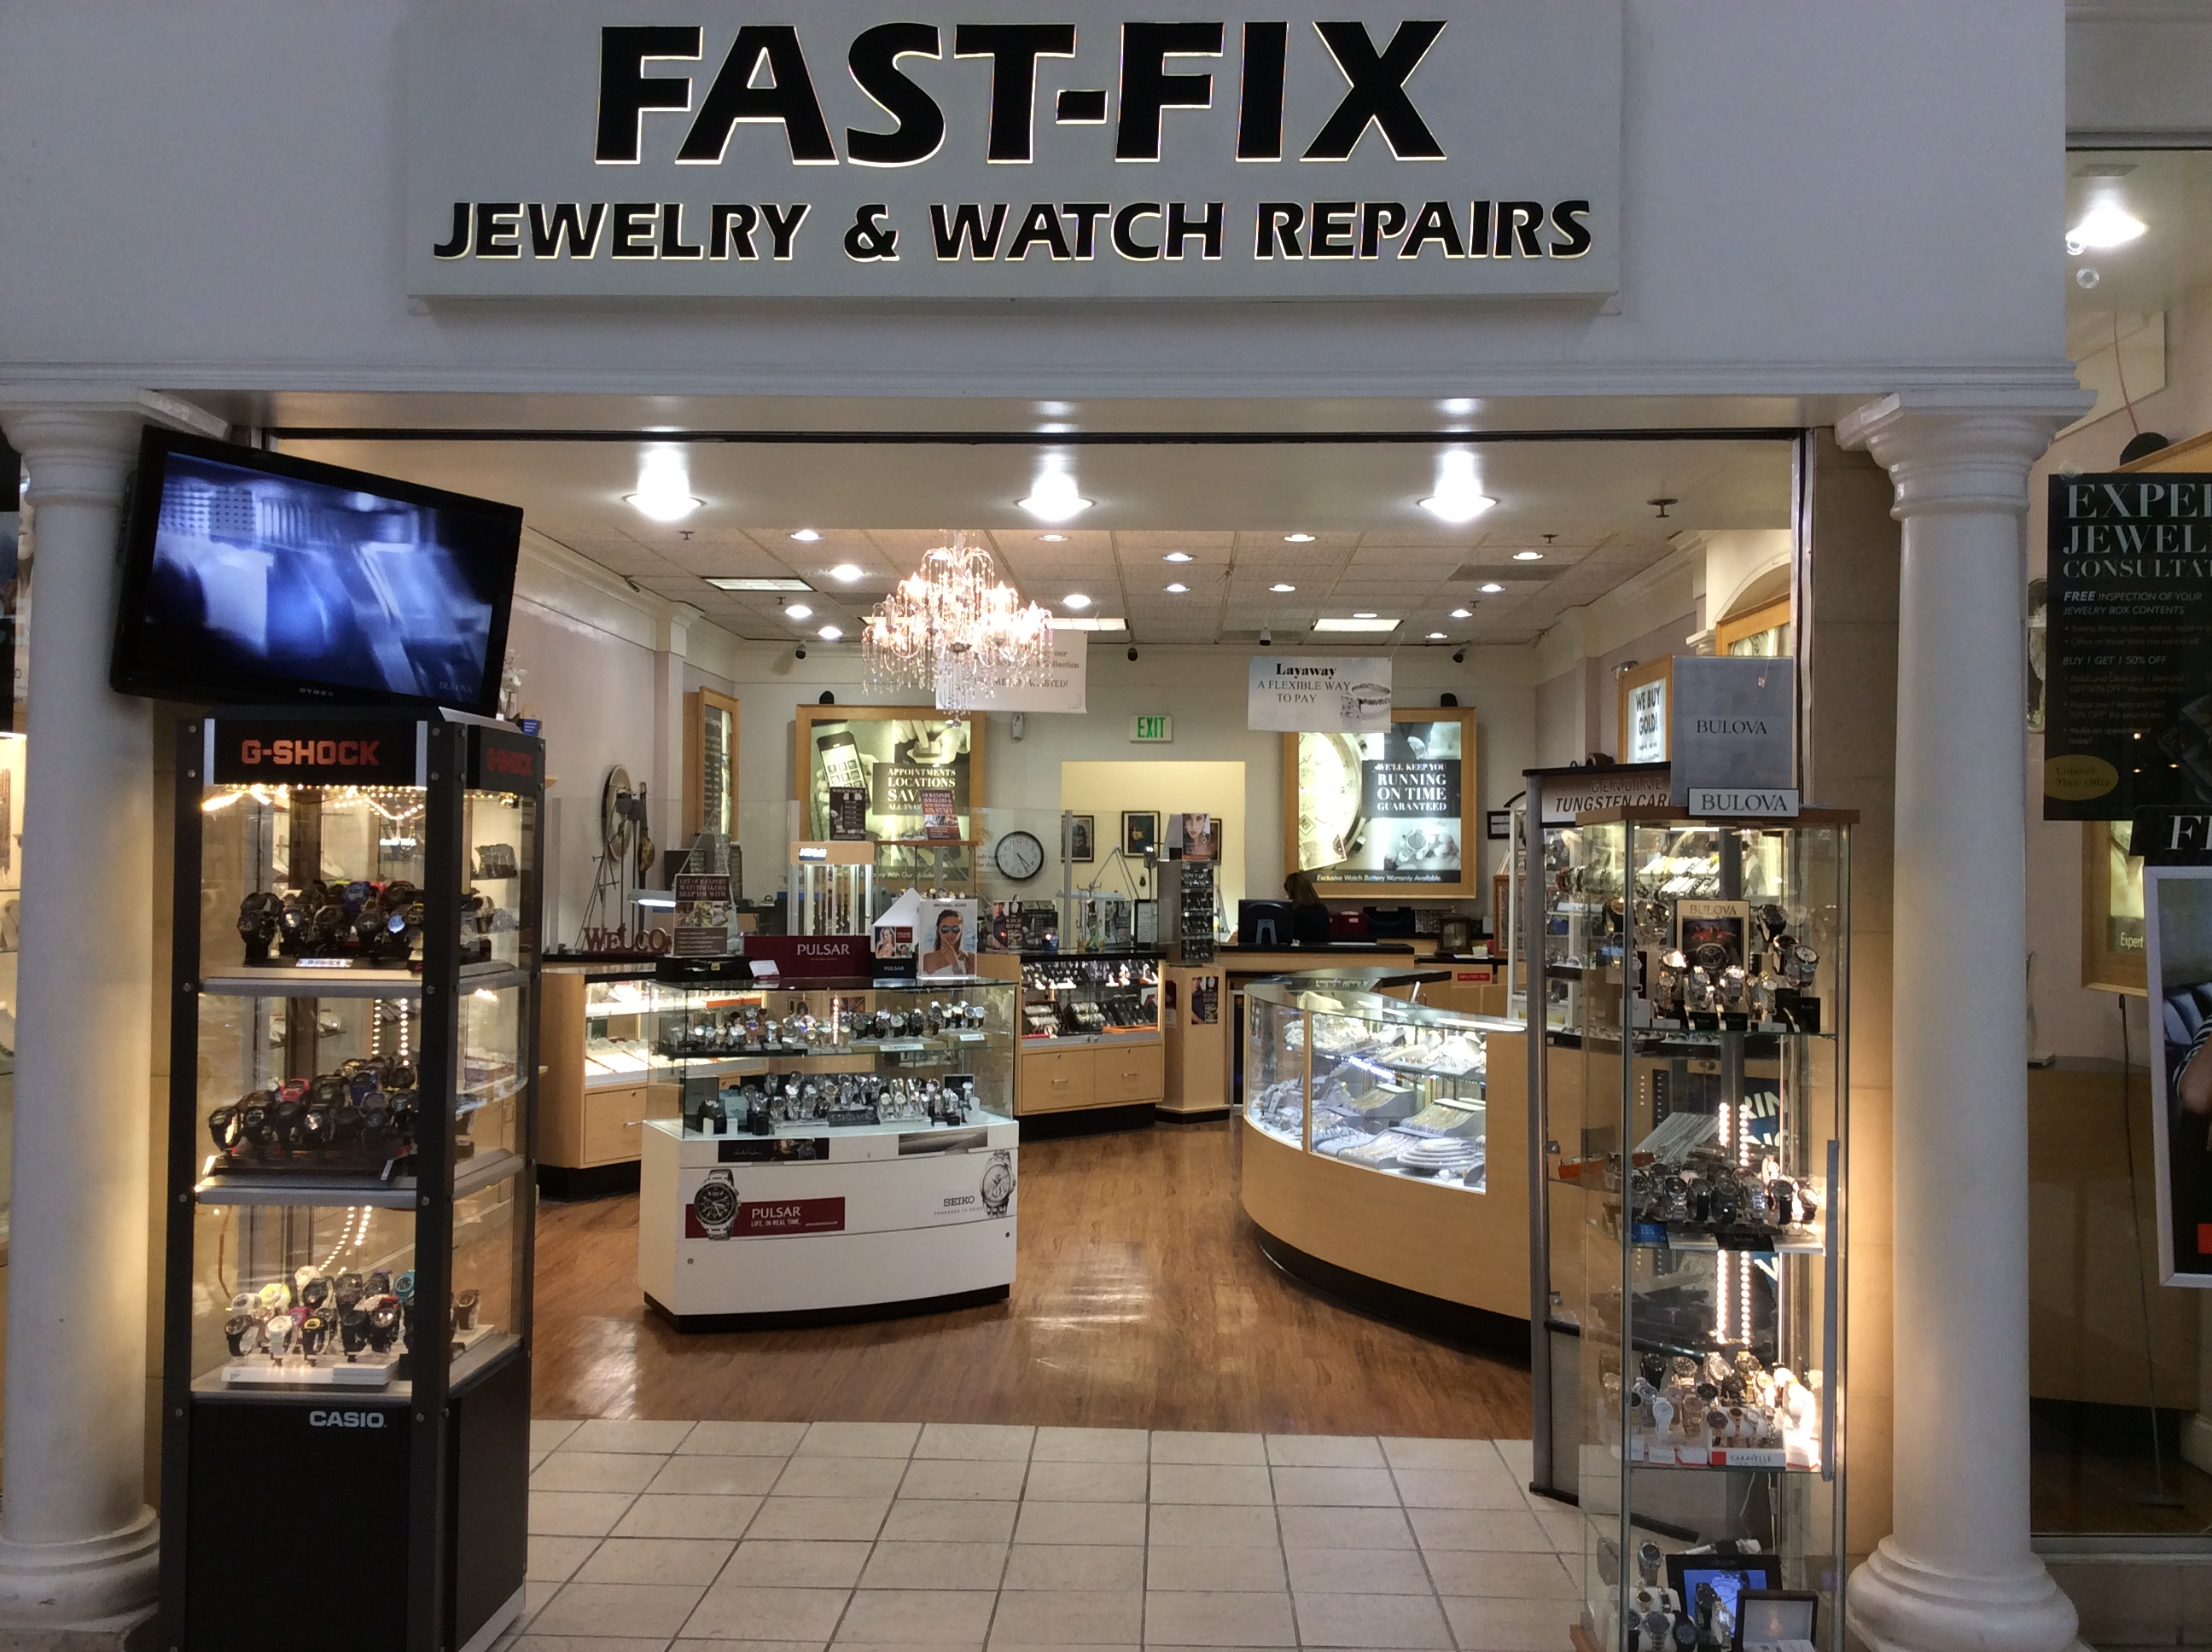 Fast fix jewelry and watch repairs san bernardino ca for Fast fix jewelry repair